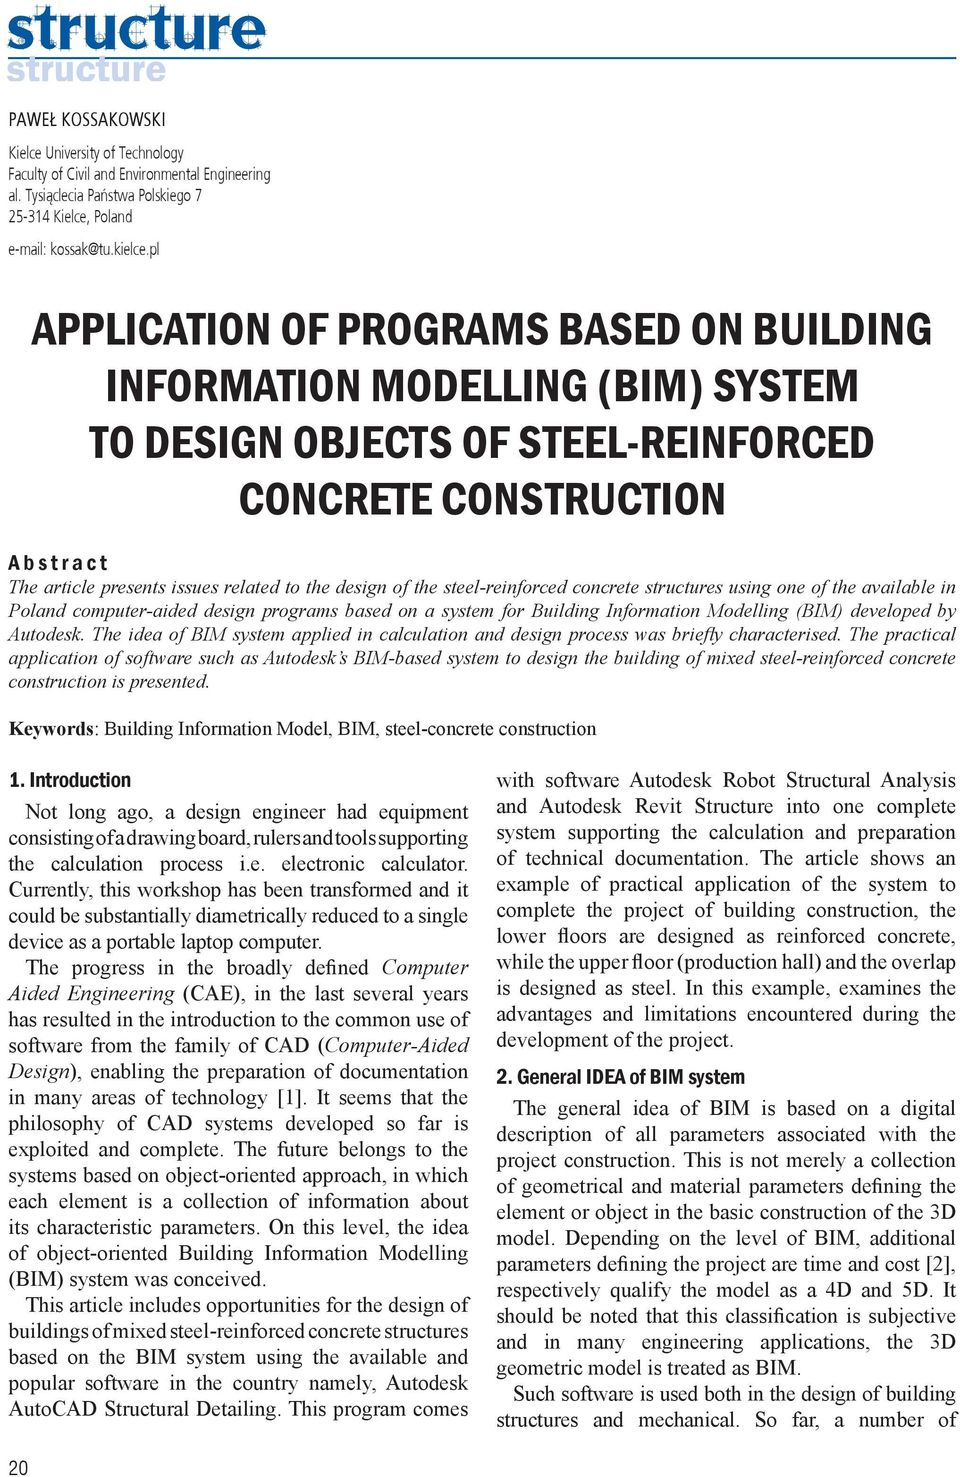 design of the steel-reinforced concrete structures using one of the available in Poland computer-aided design programs based on a system for Building Information Modelling (BIM) developed by Autodesk.